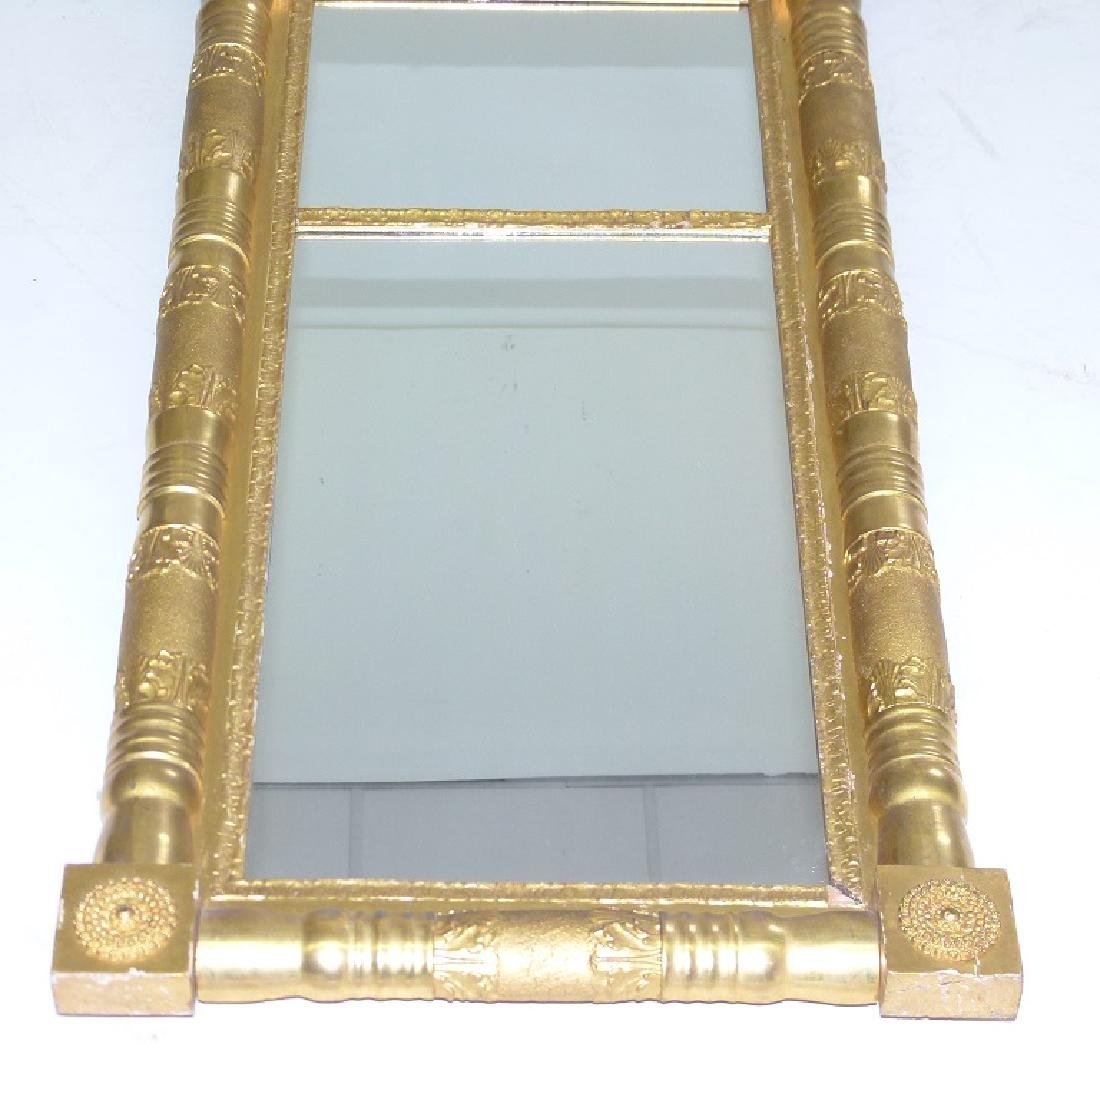 FINE CLASSICAL EMPIRE GILT 2 PART WALL MIRROR - 3